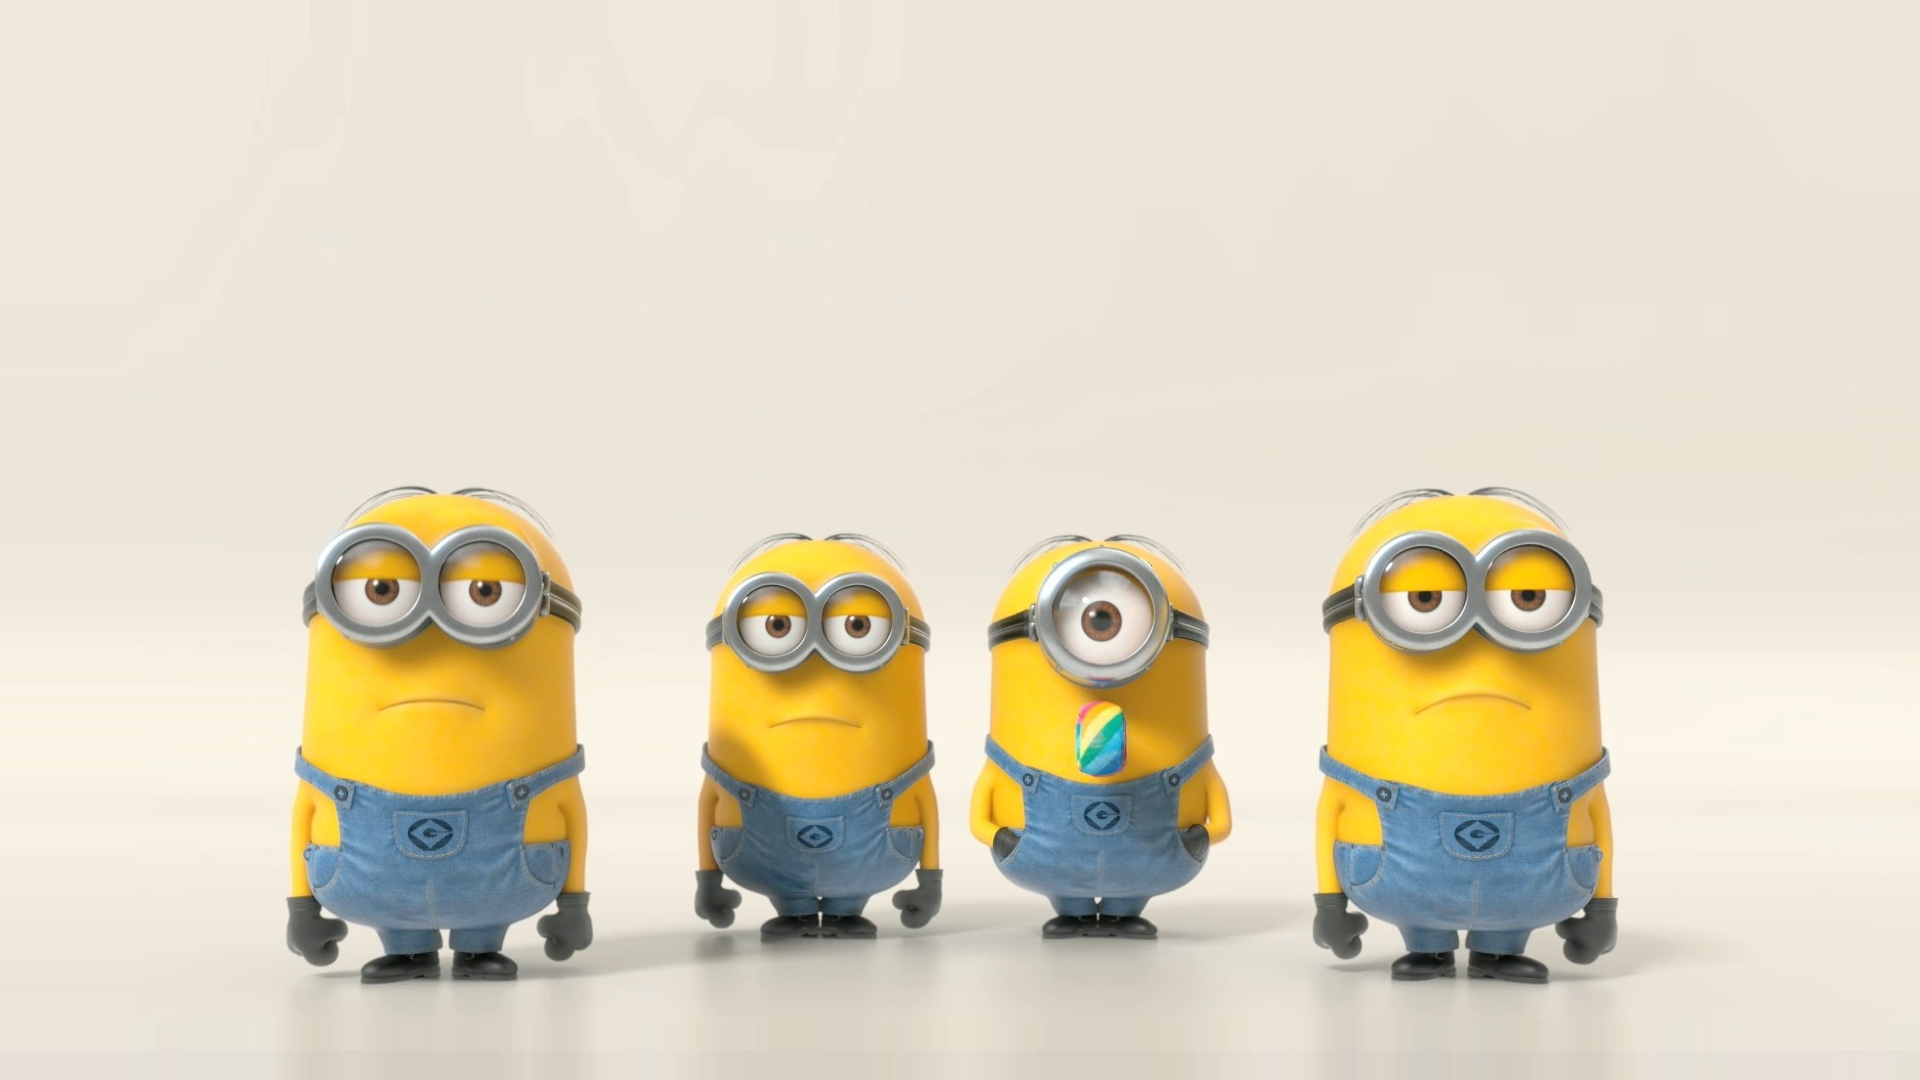 Awesome-minions-backgrounds-hd-free-download-wallpaper-wpc5802414